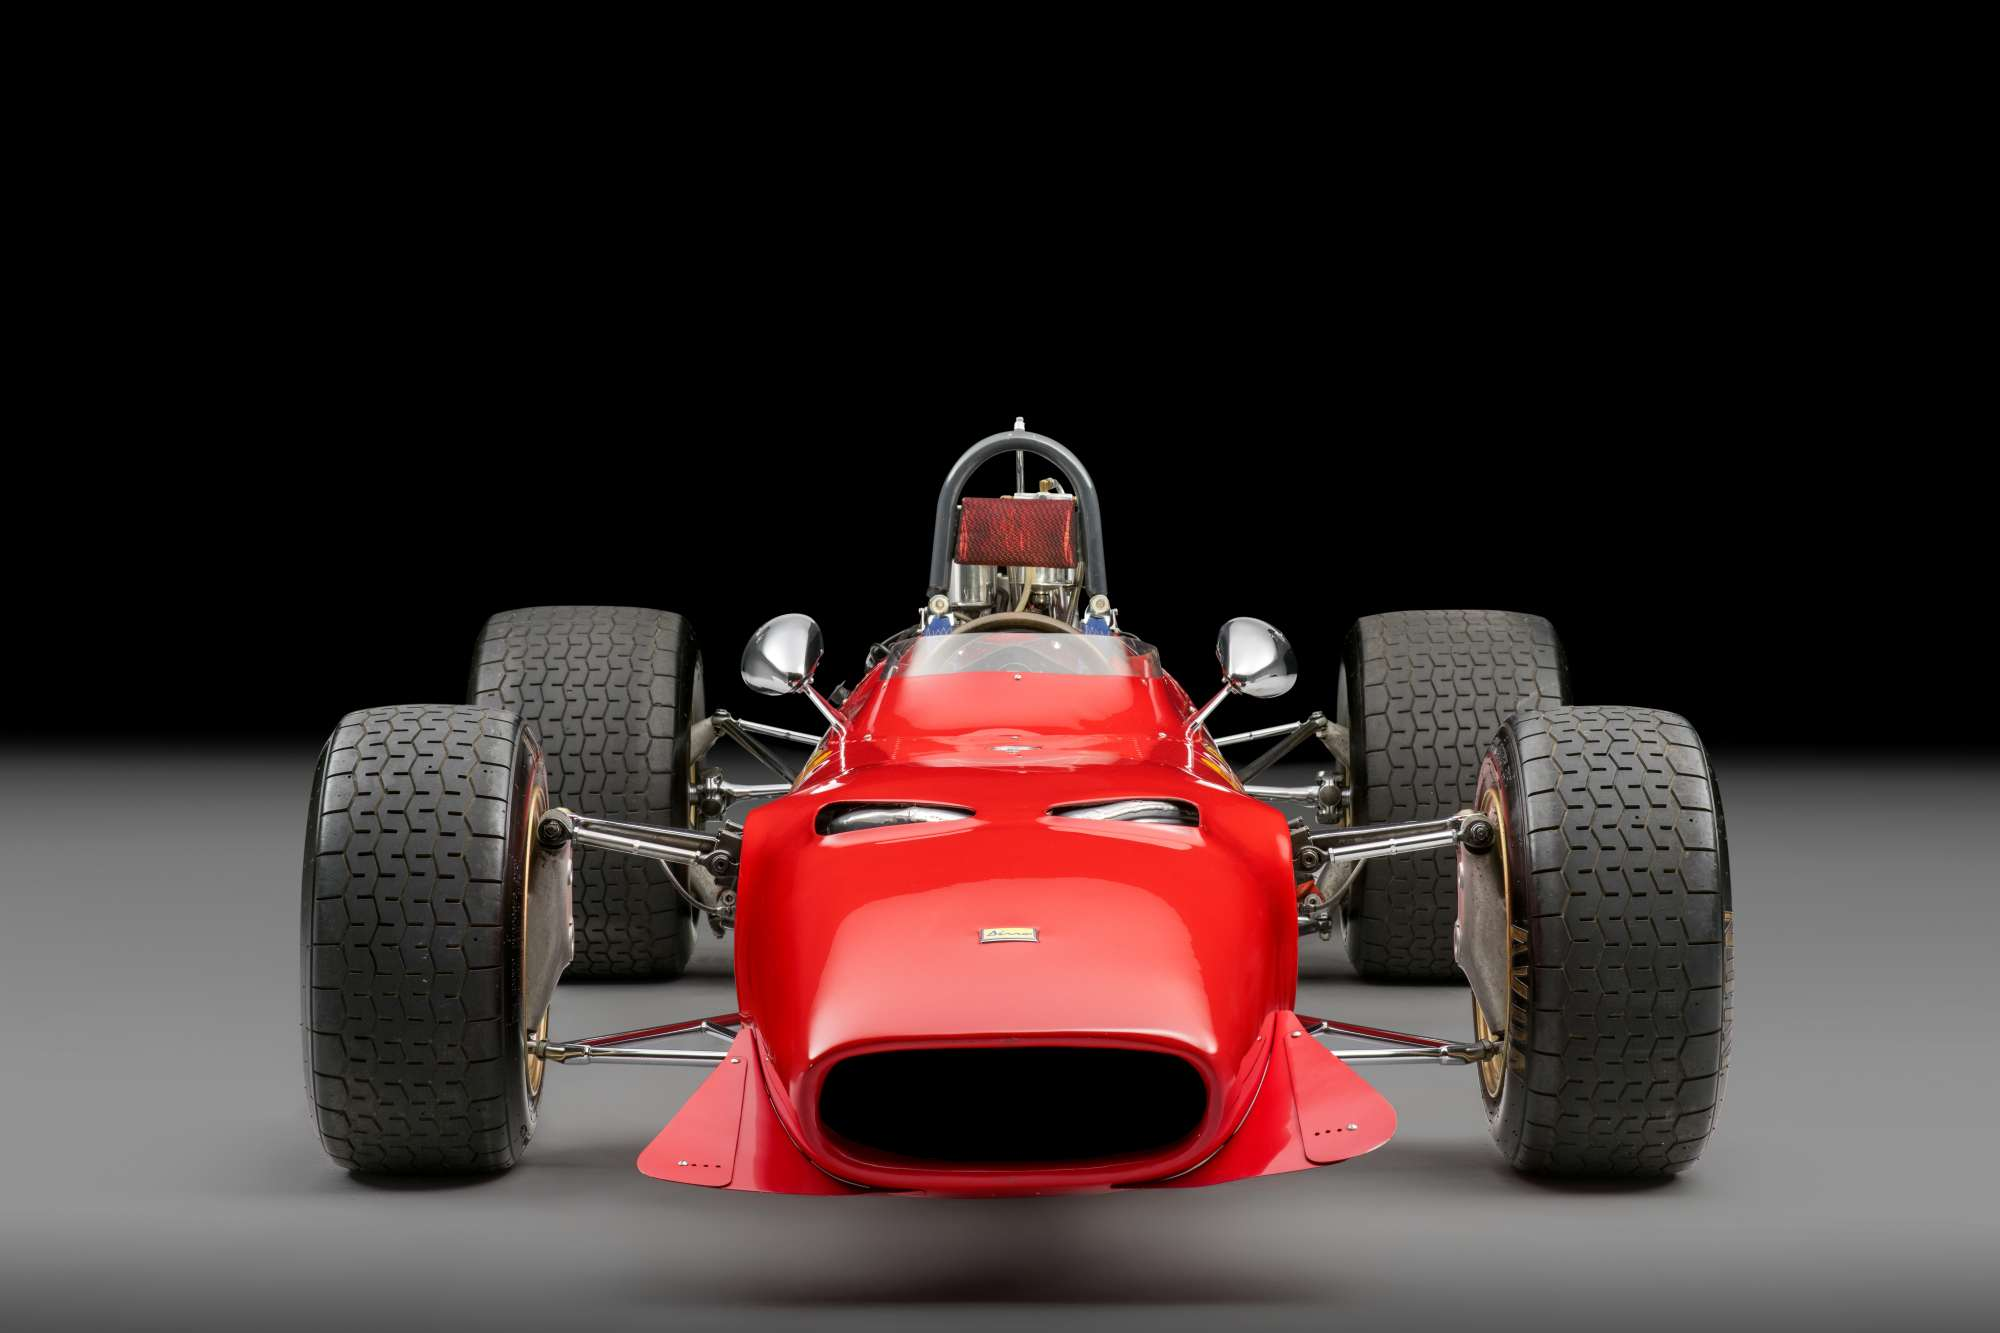 Racing Cars For Sale >> 1968 Ferrari 166/246 Dino   Previously Sold   FISKENS